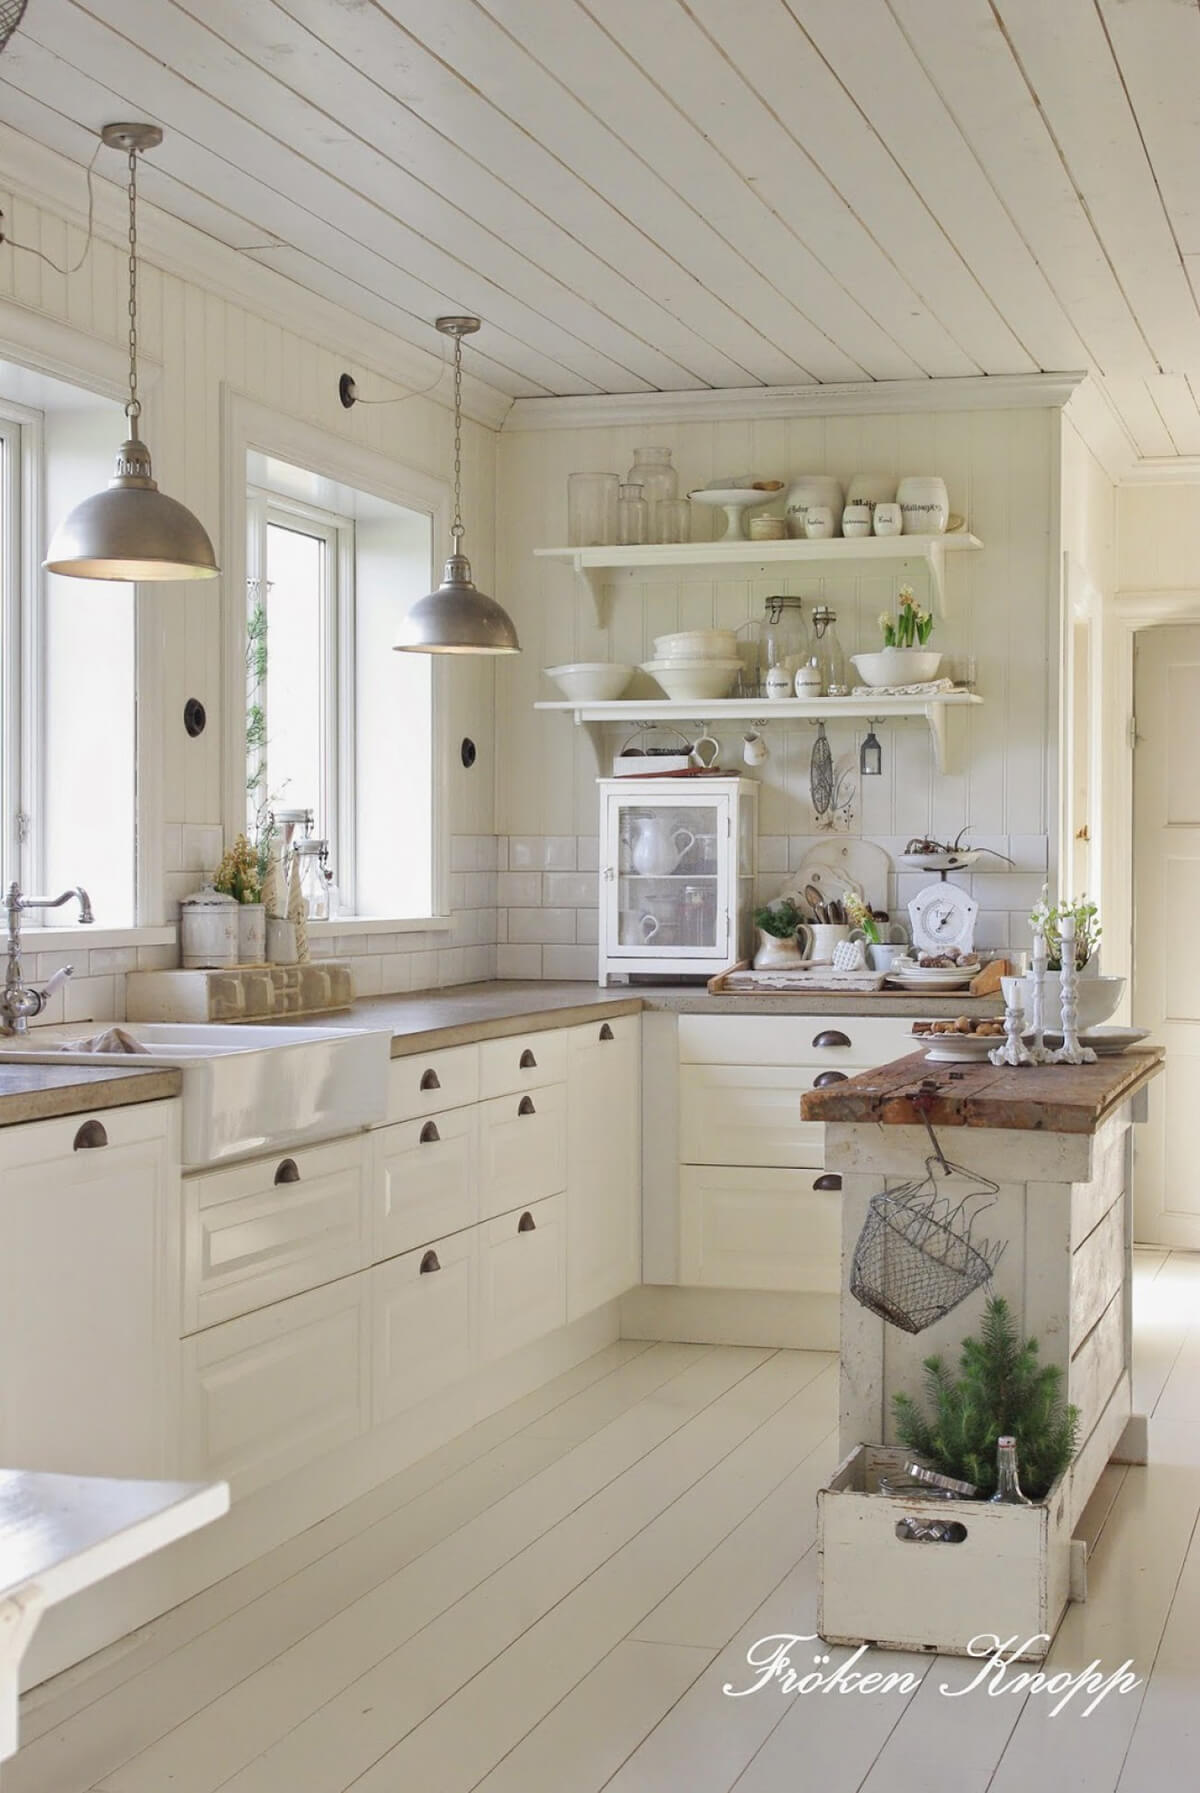 35 Best French Country Design And Decor Ideas For 2020